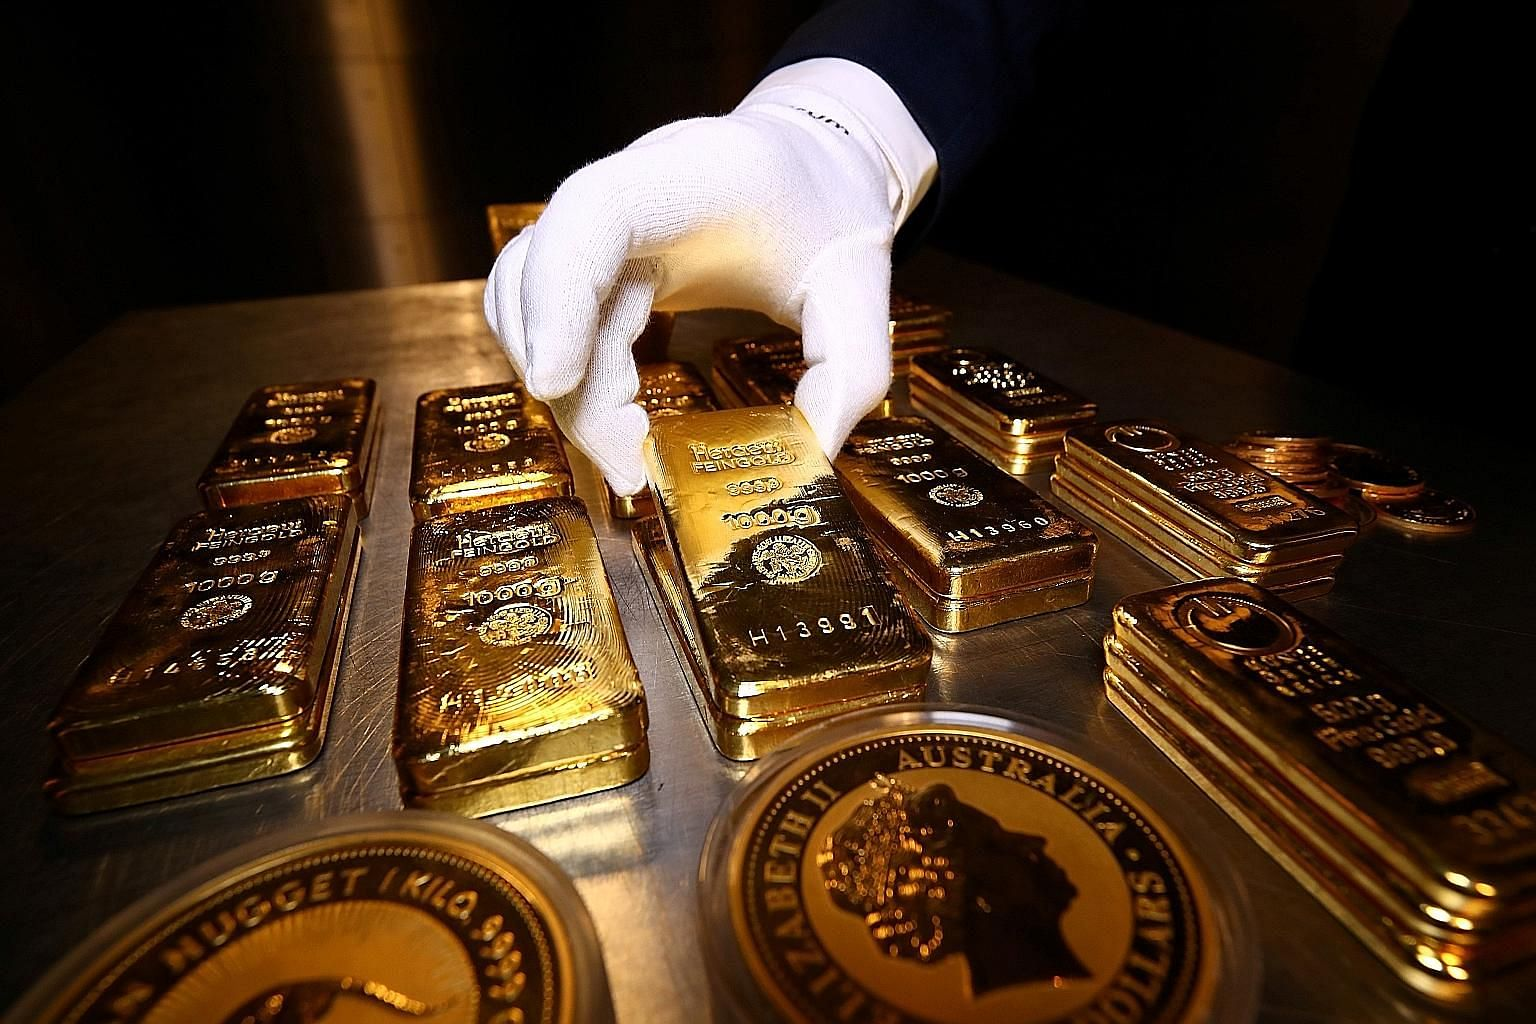 Bars are easy to trade and hence appeal to a variety of investors such as governments, and institutional and private investors. Coins are more popular among many retail investors. They are generally minted by government agencies that guarantee gold c